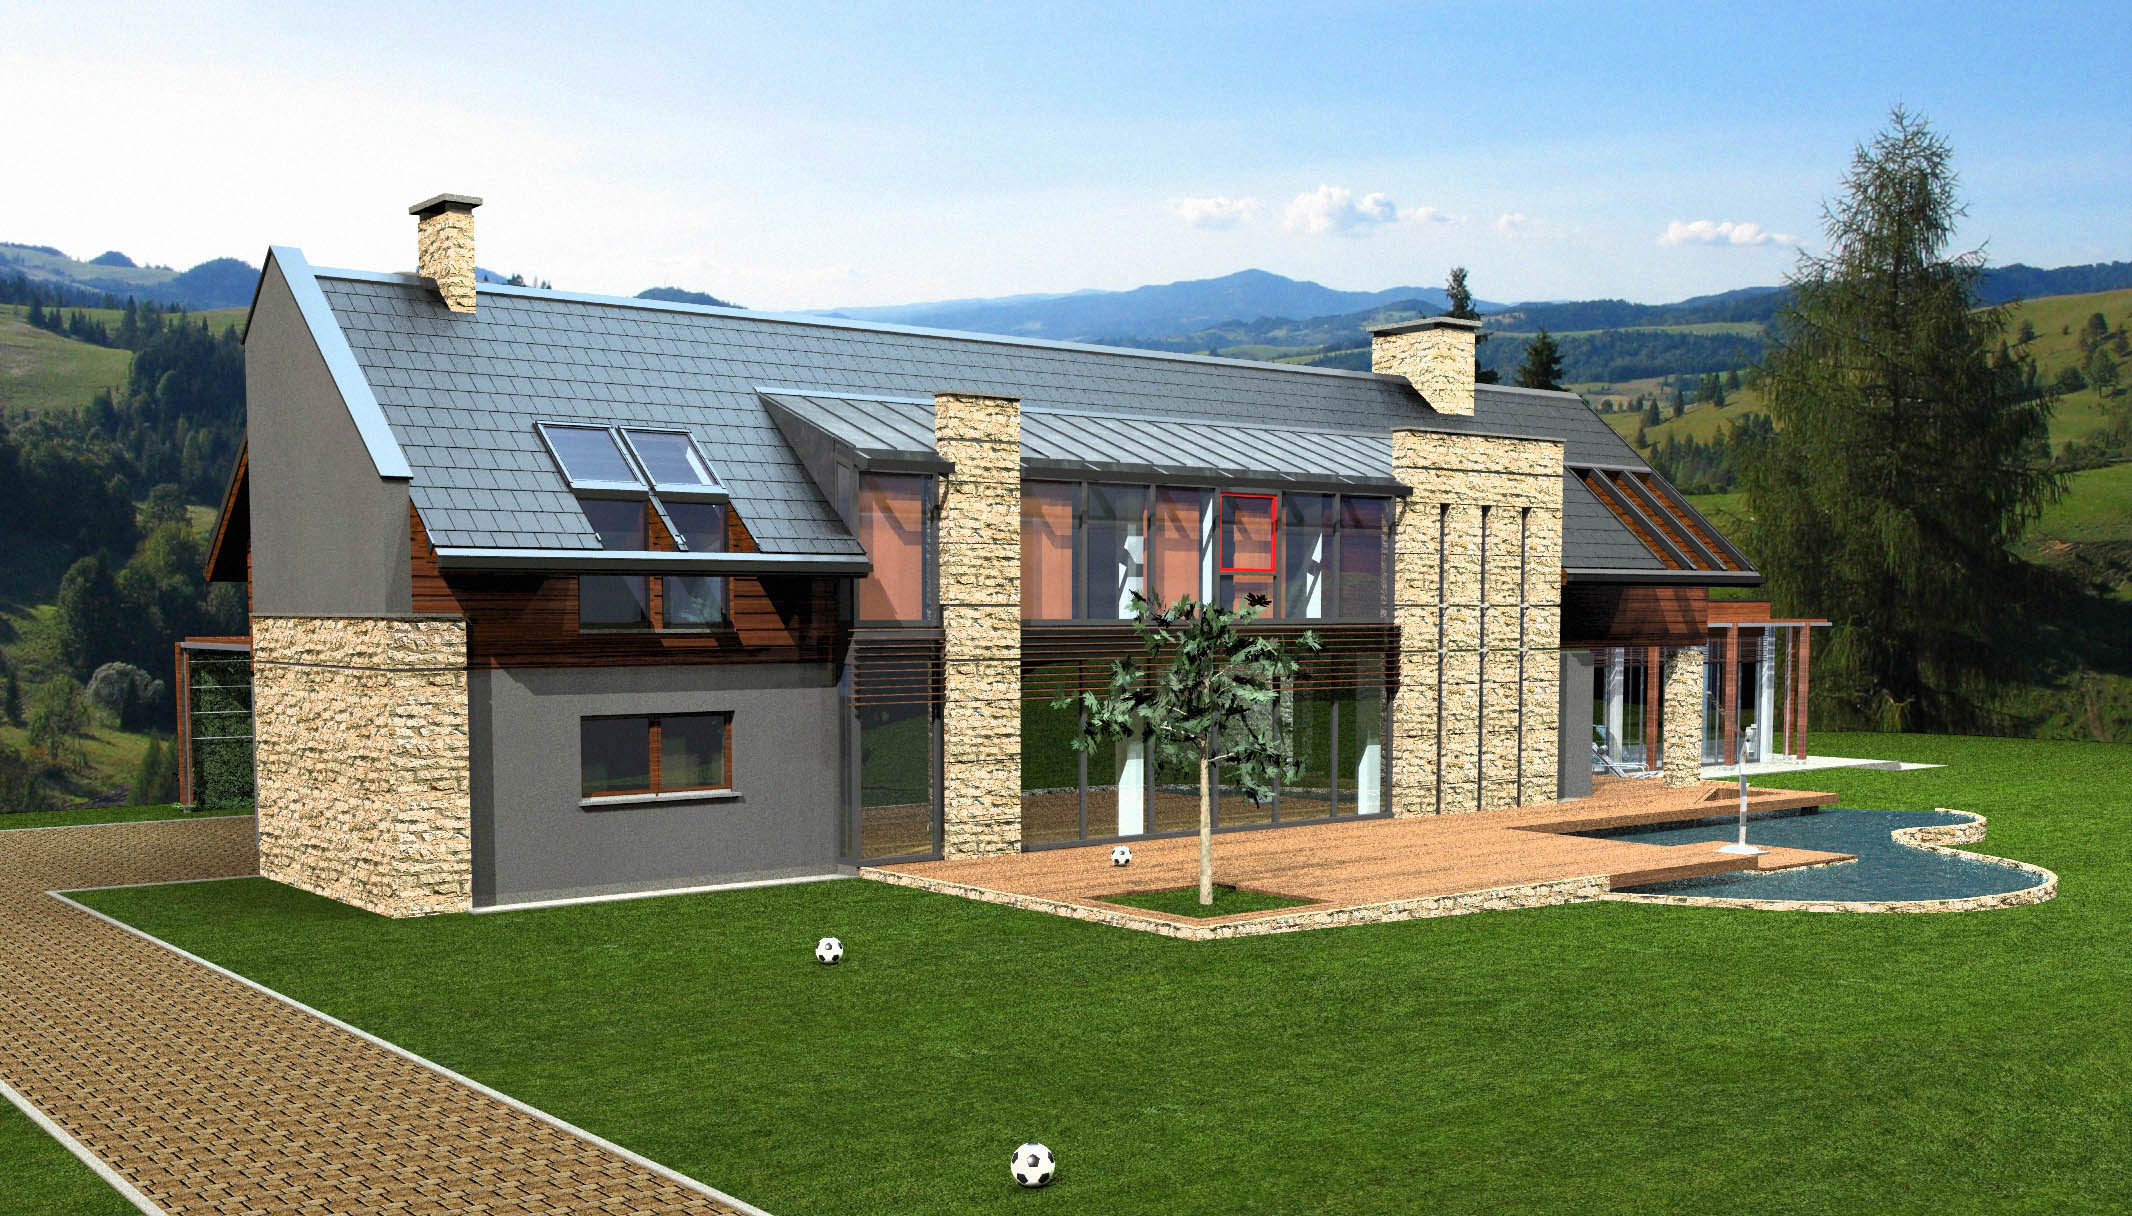 Modern country house 3d model download 3ds max dxf dwg c4d obj in houses